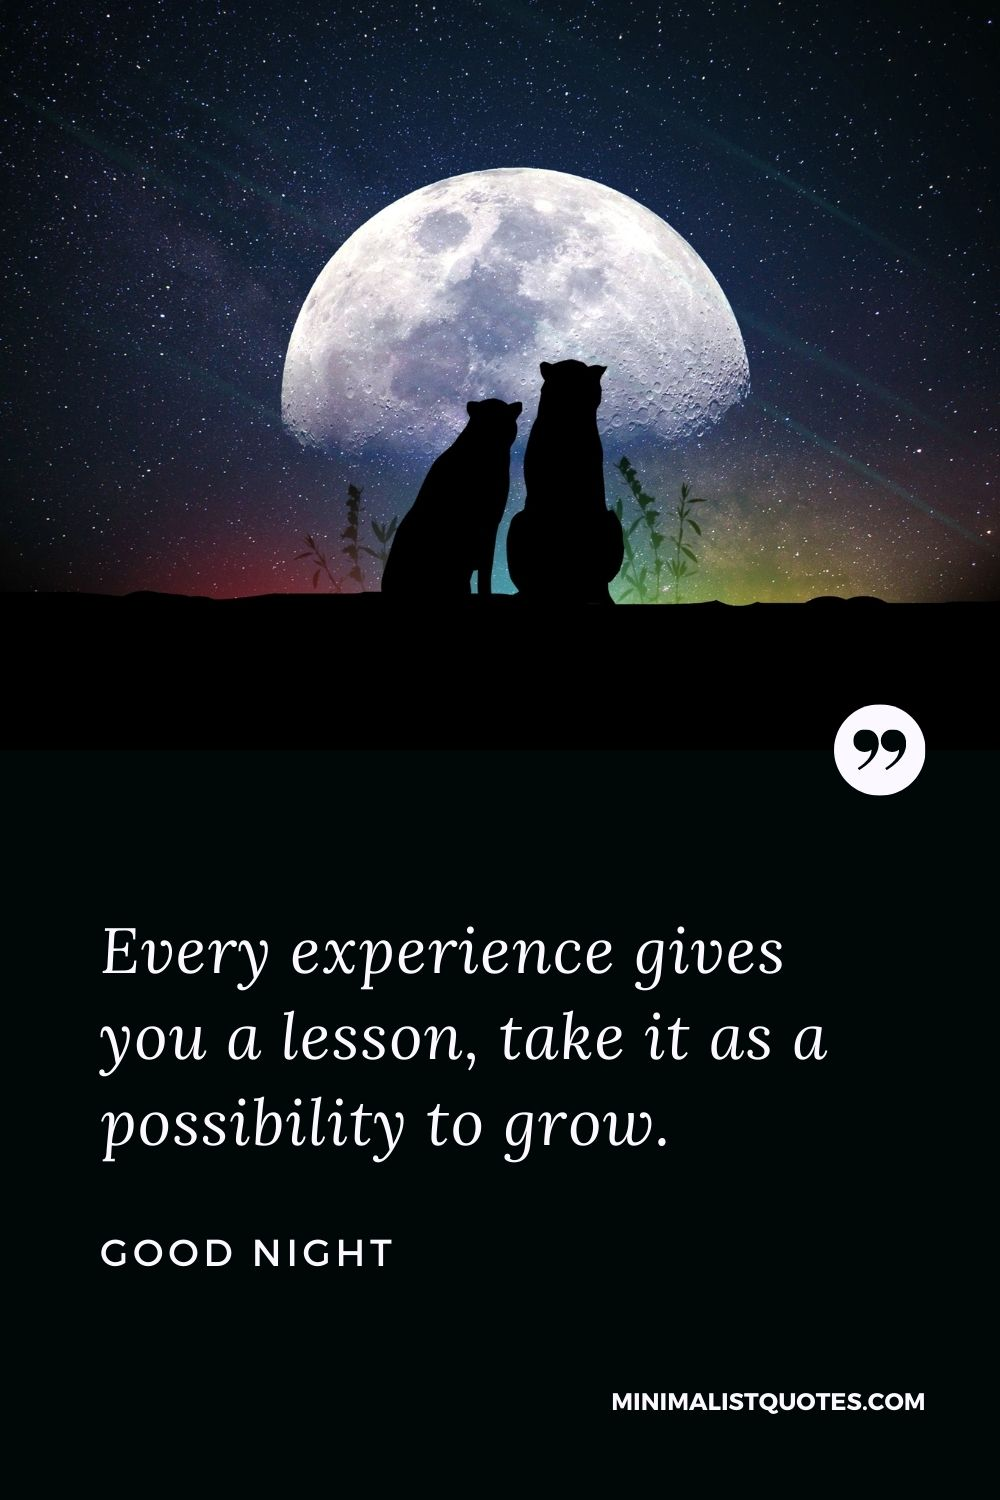 Good Night Wishes - Every experience gives you a lesson, take it as a possibility to grow.